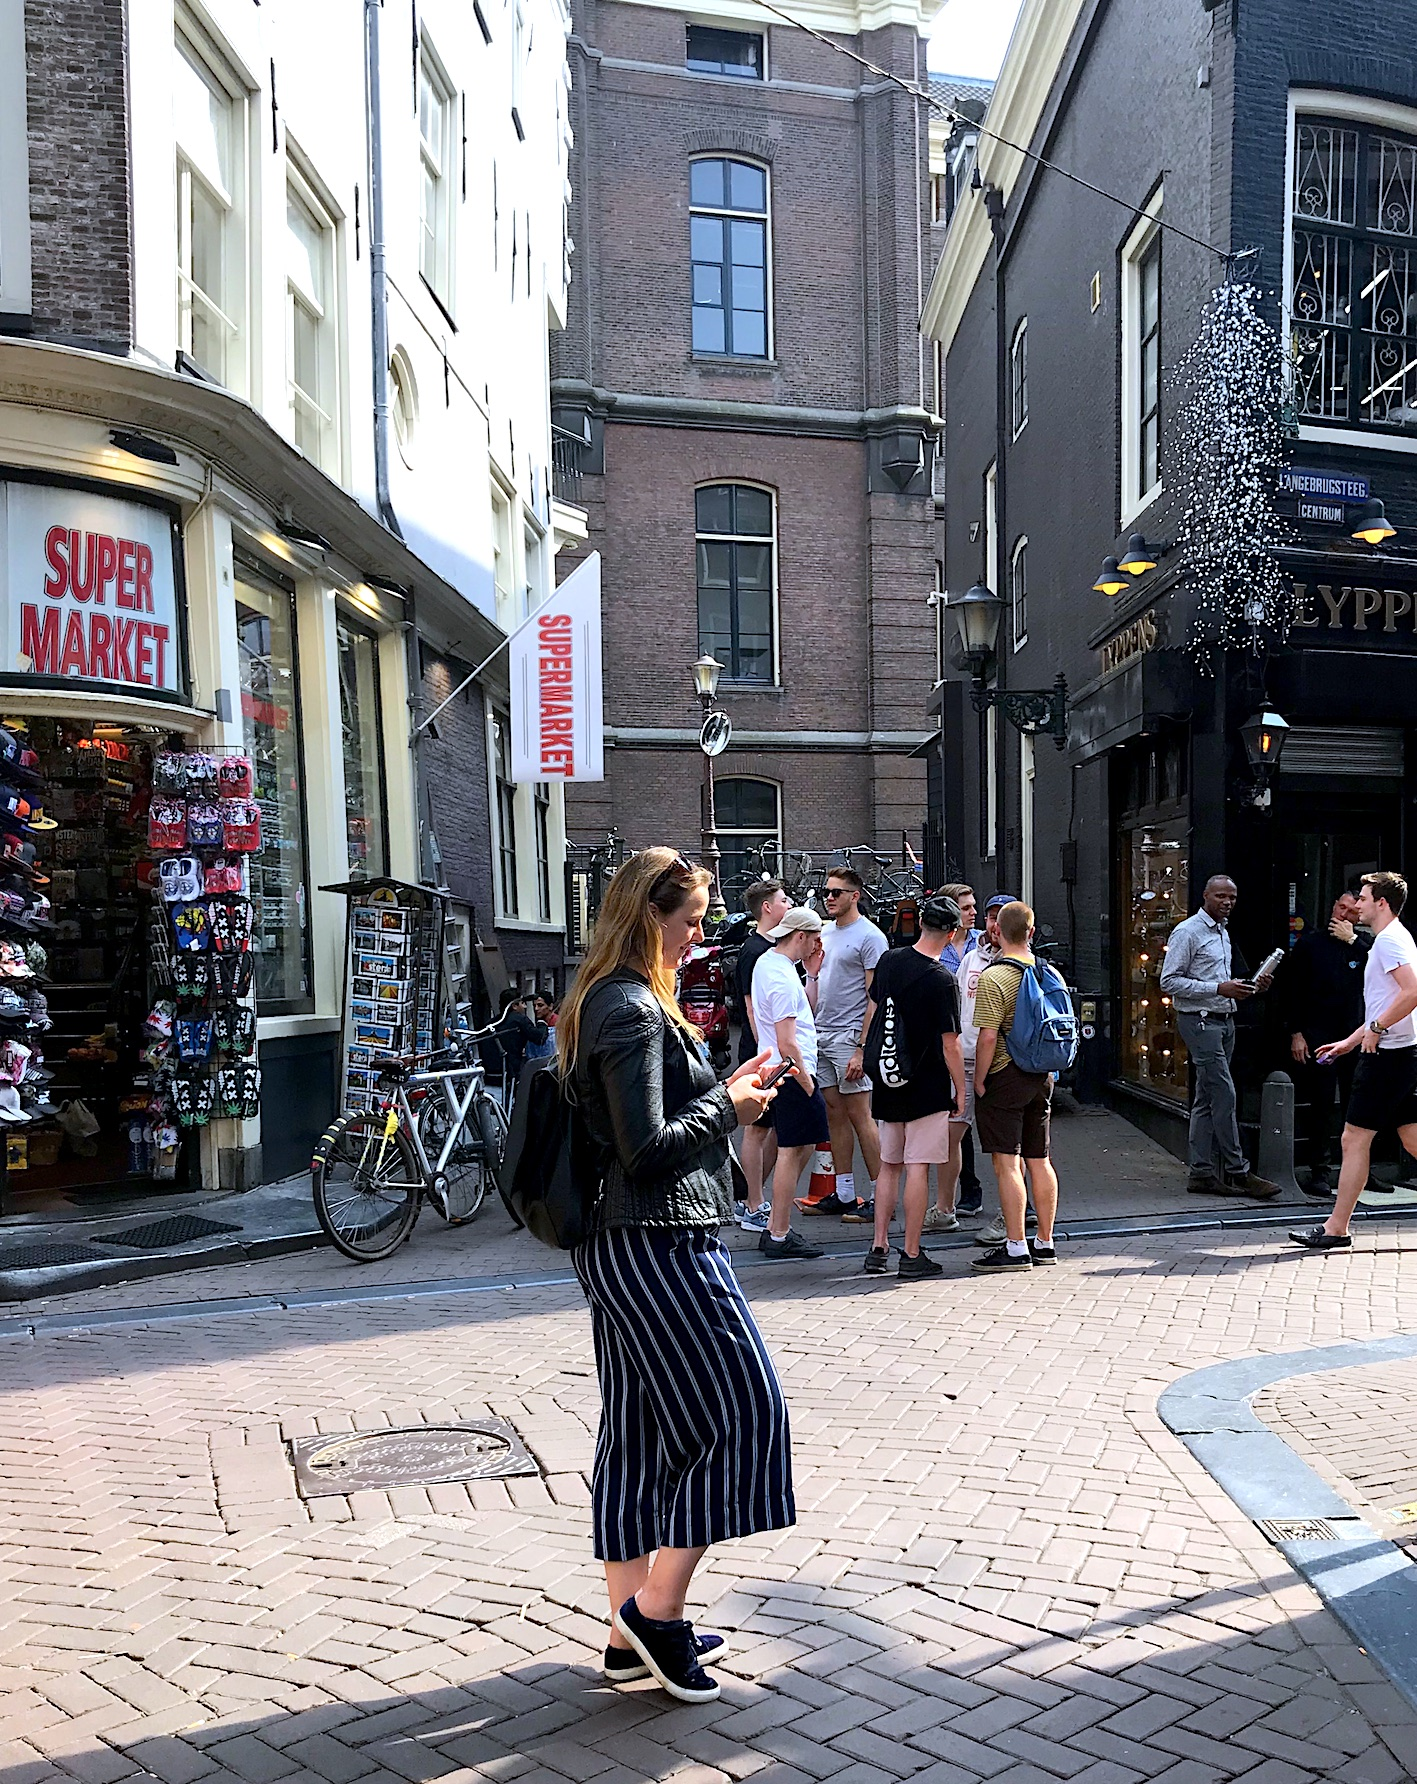 Things not to do in Amsterdam